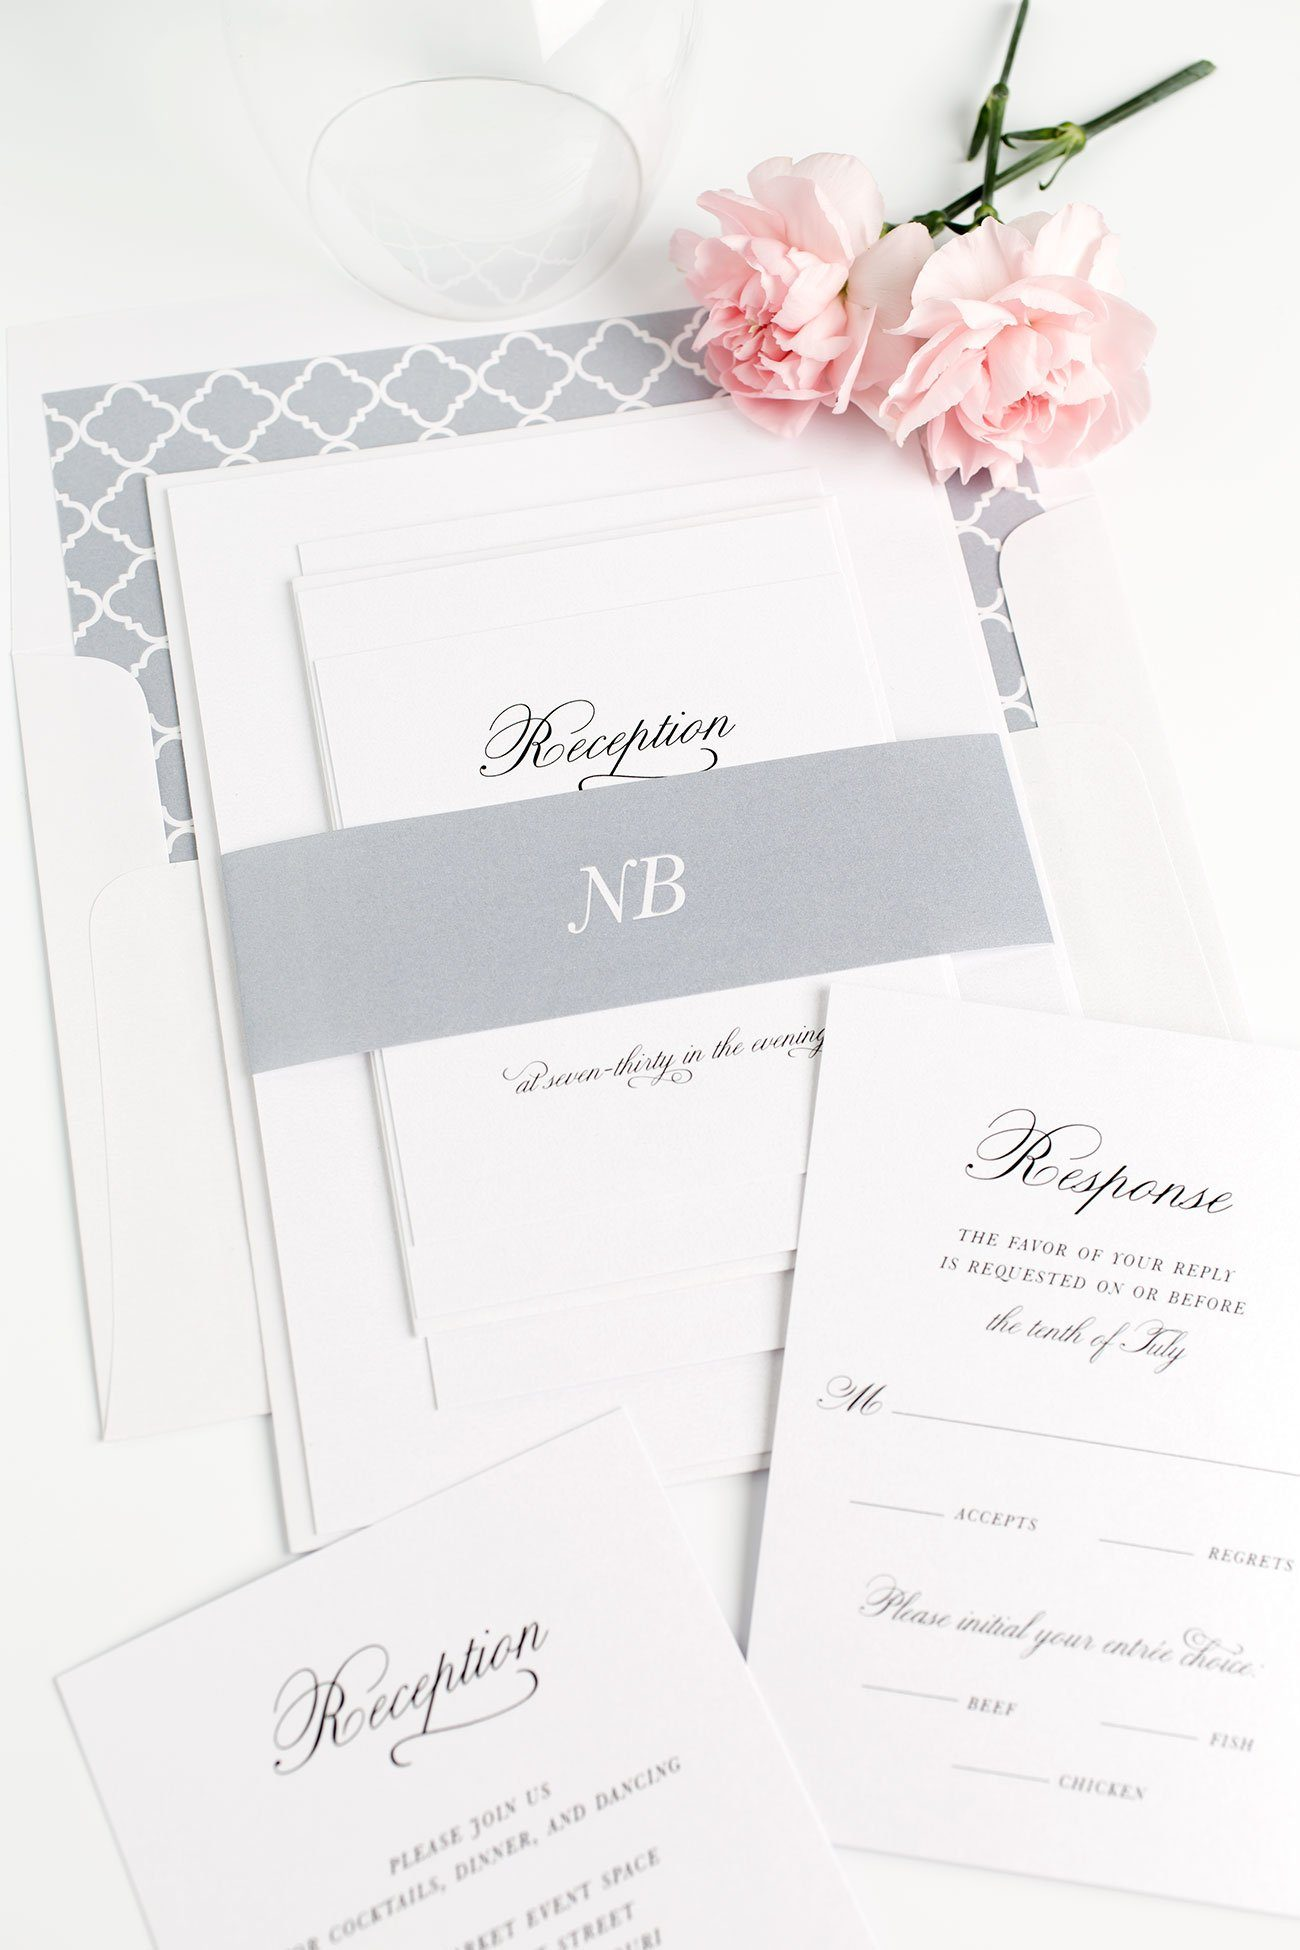 Simple Wedding Invitations in Gray with Trellis accents